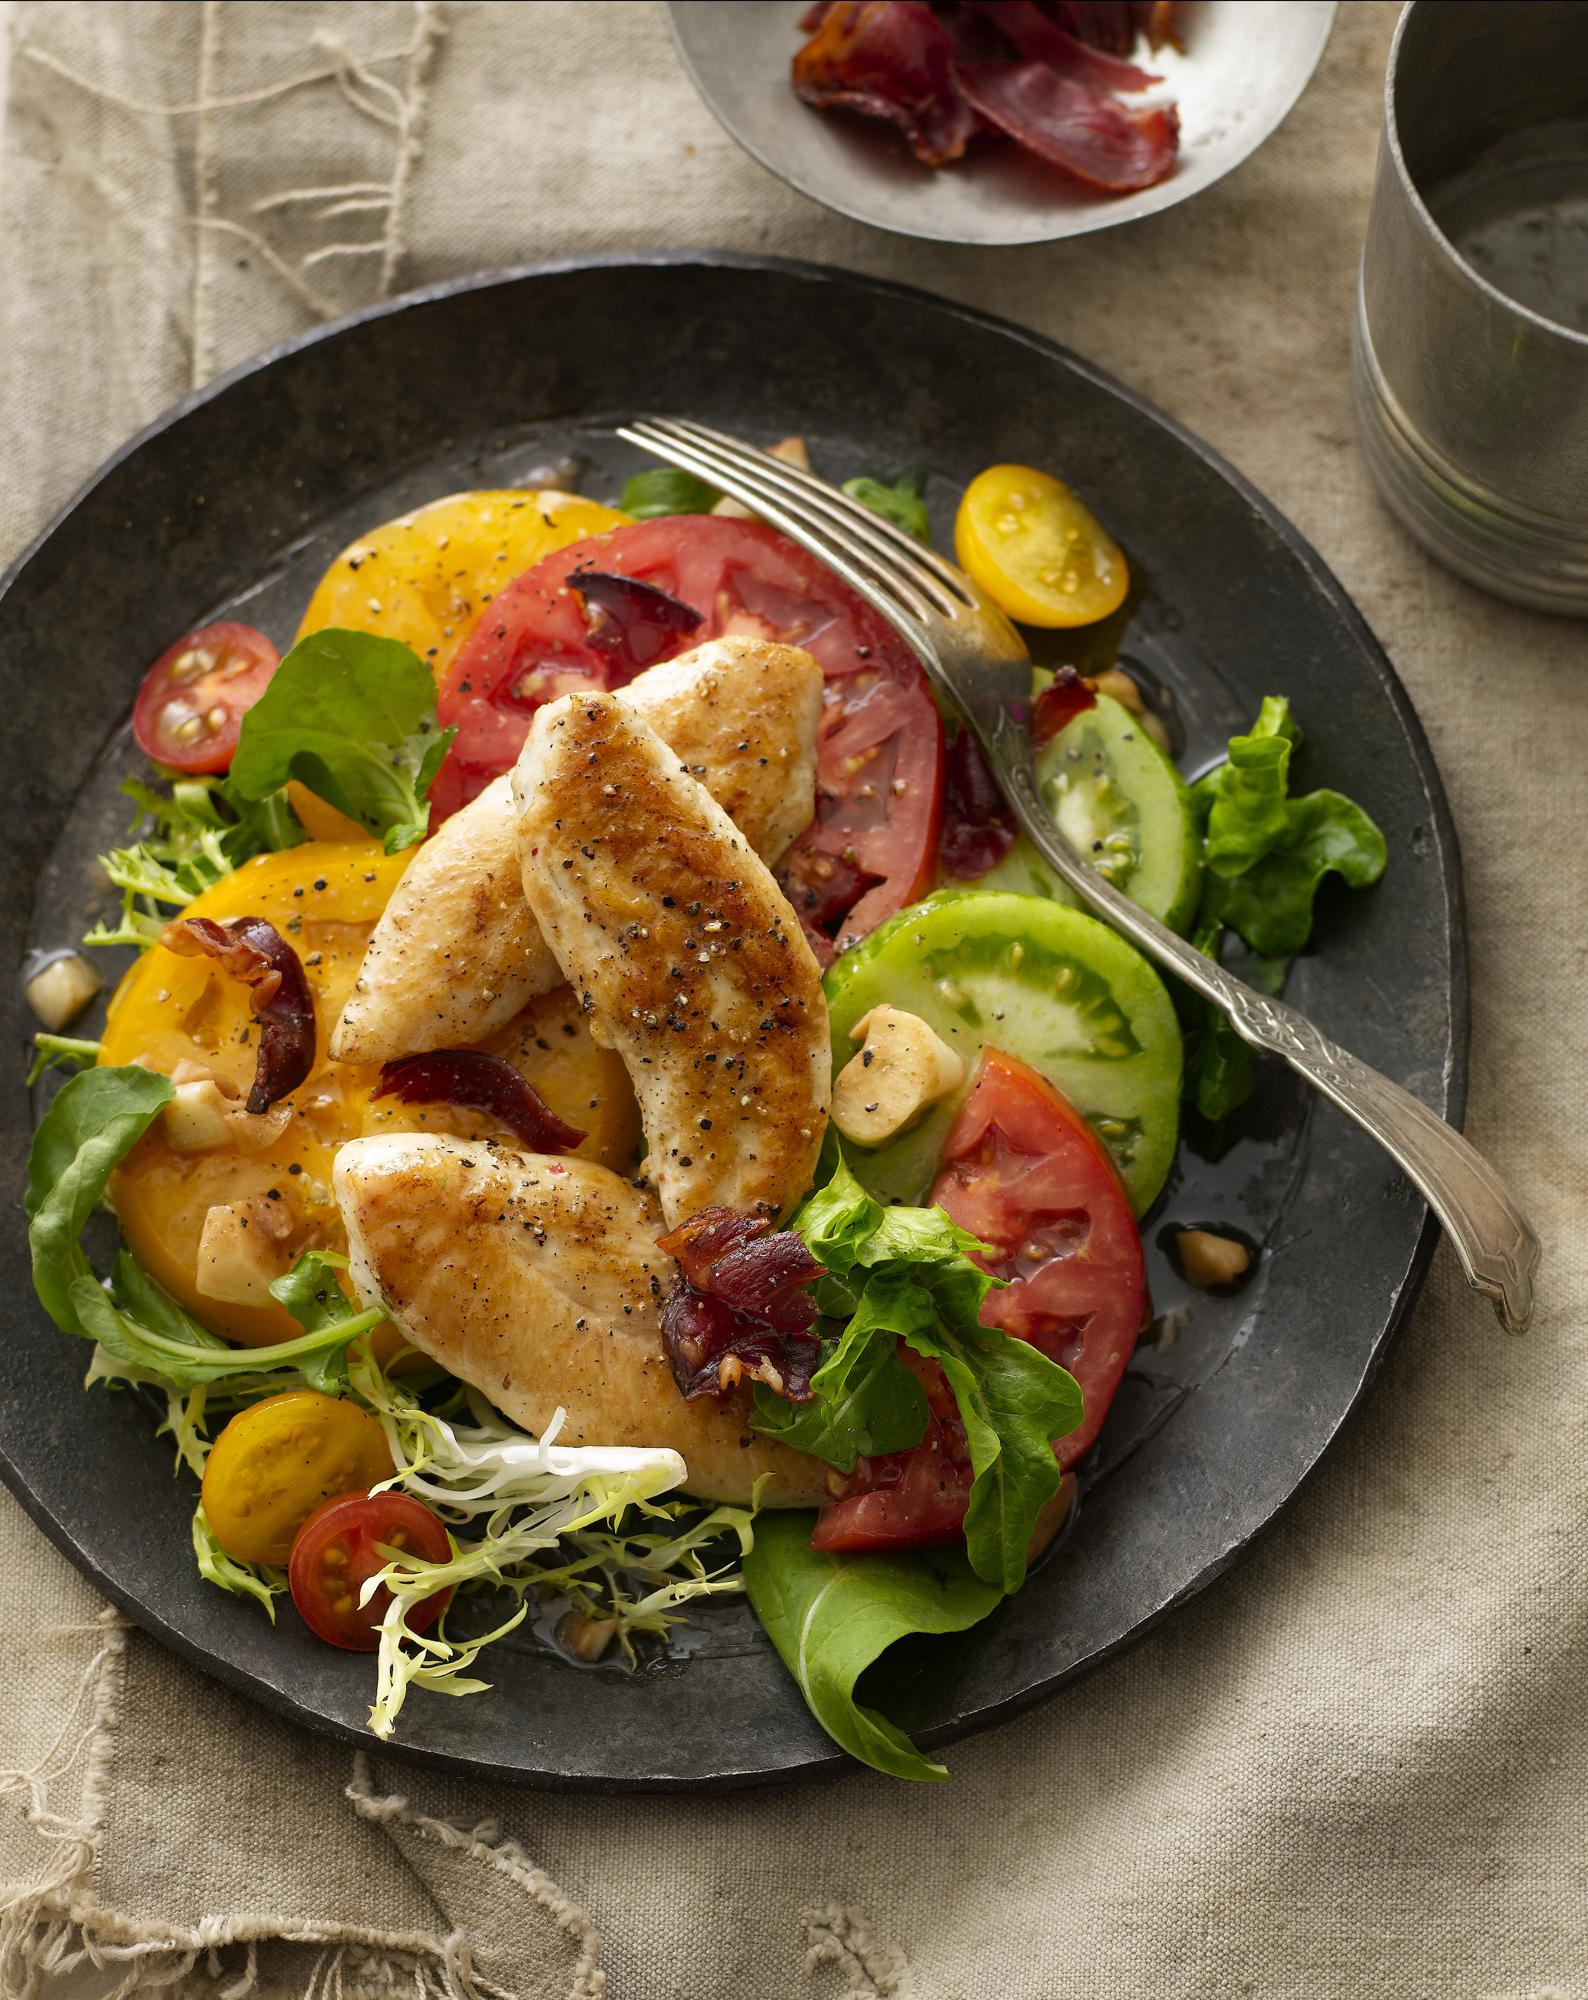 Chicken BLT Salad with Warm Garlic Vinaigrette